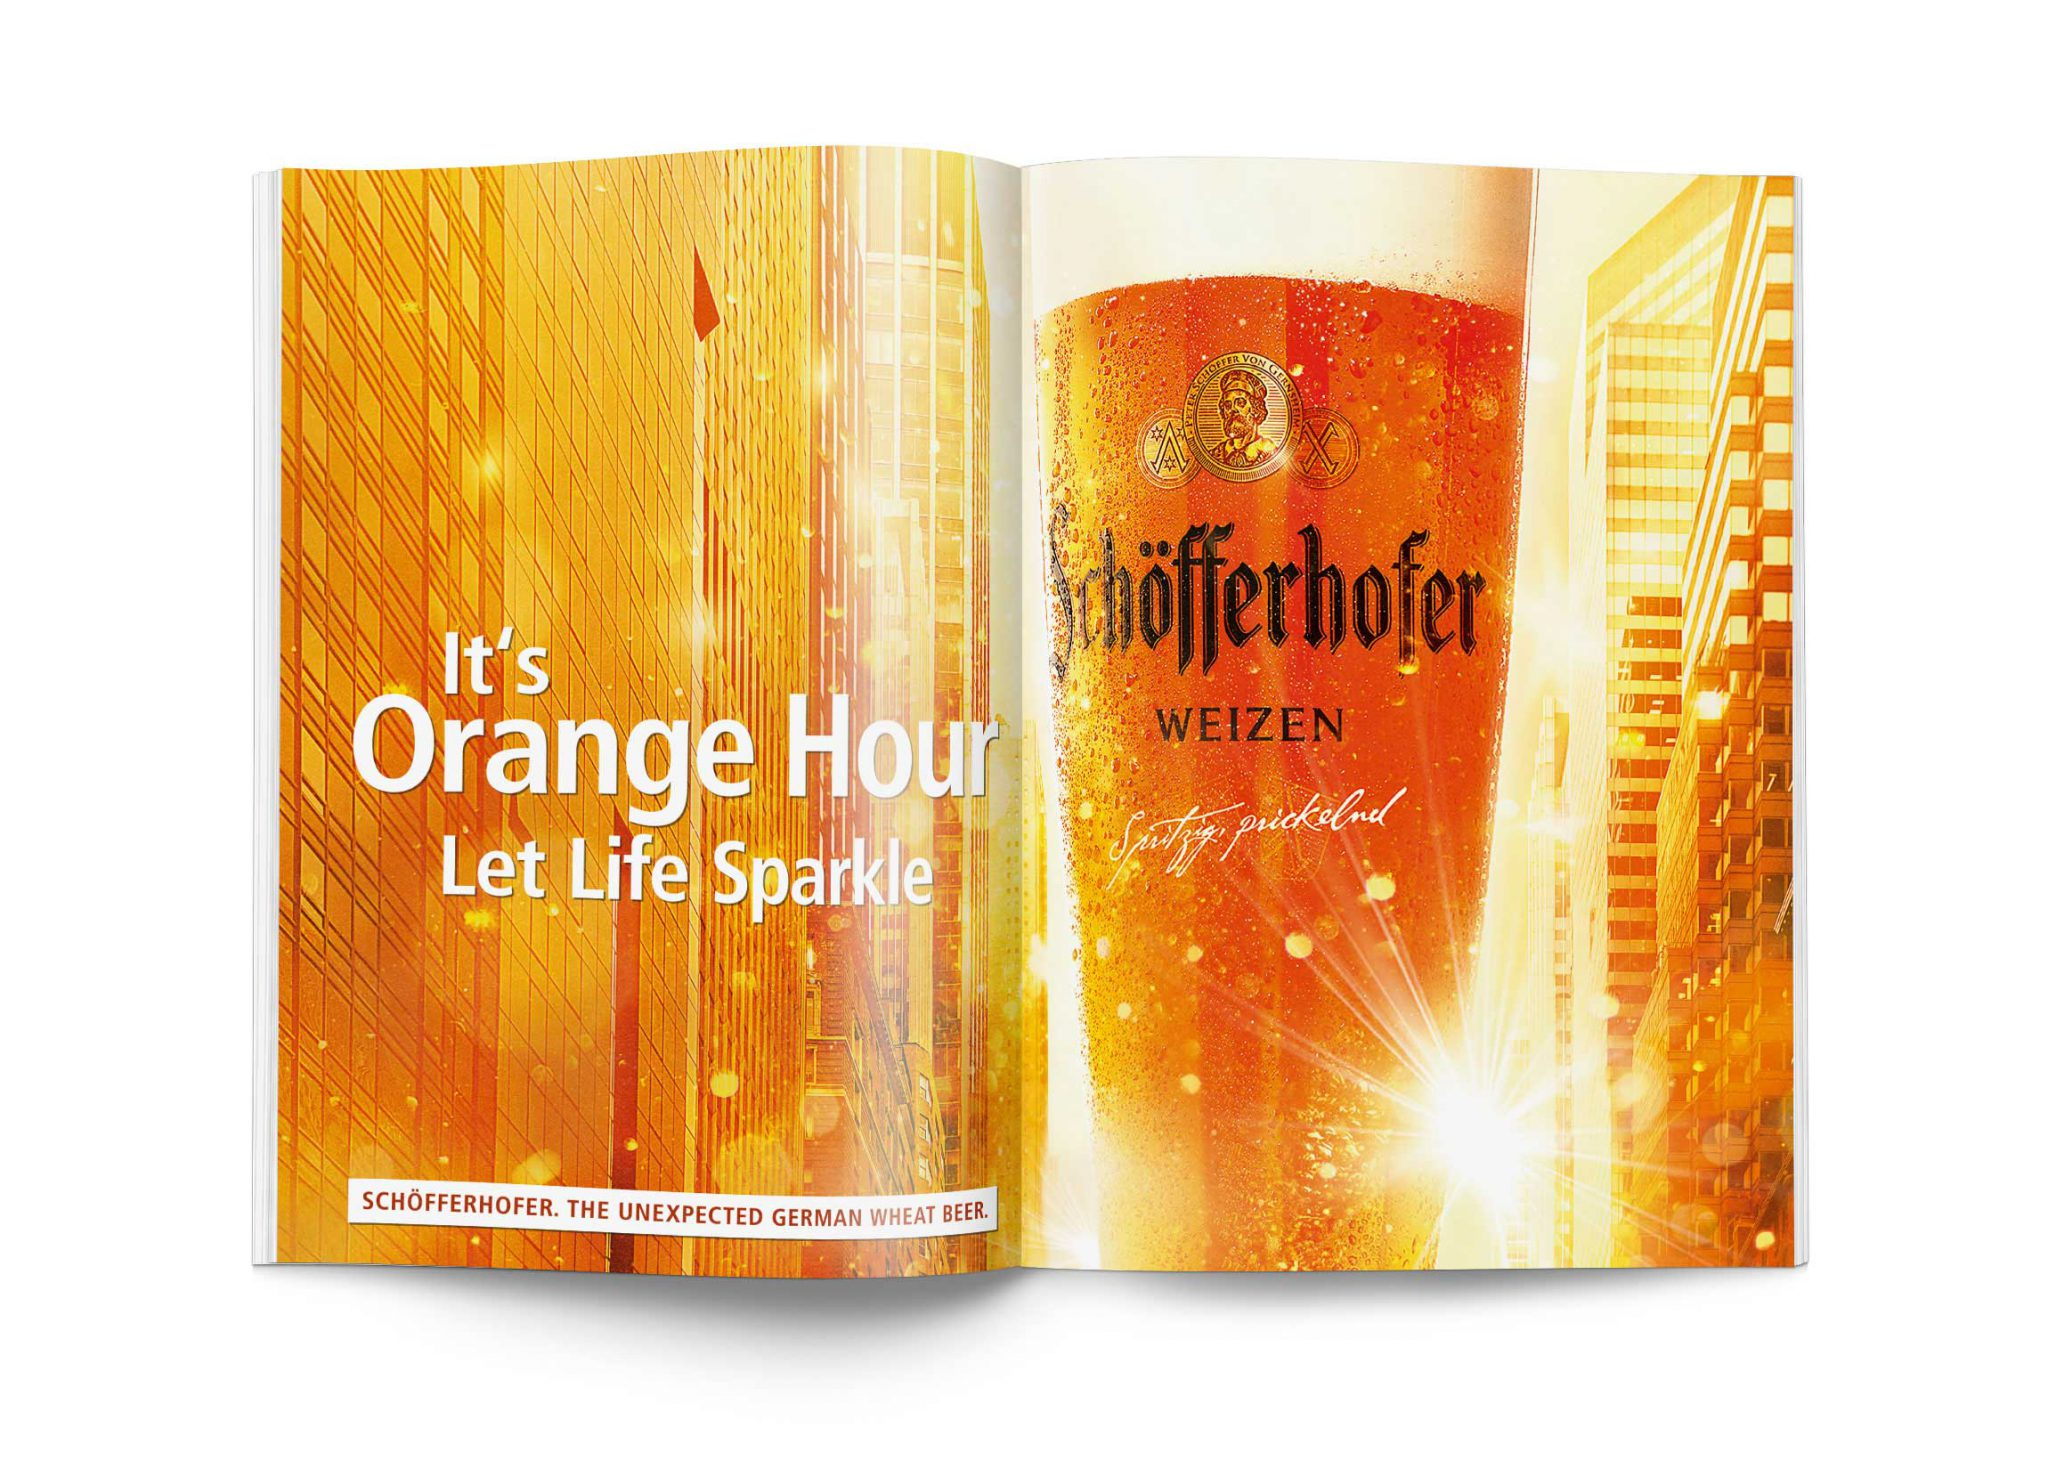 Schoefferhofer Magazine Advert